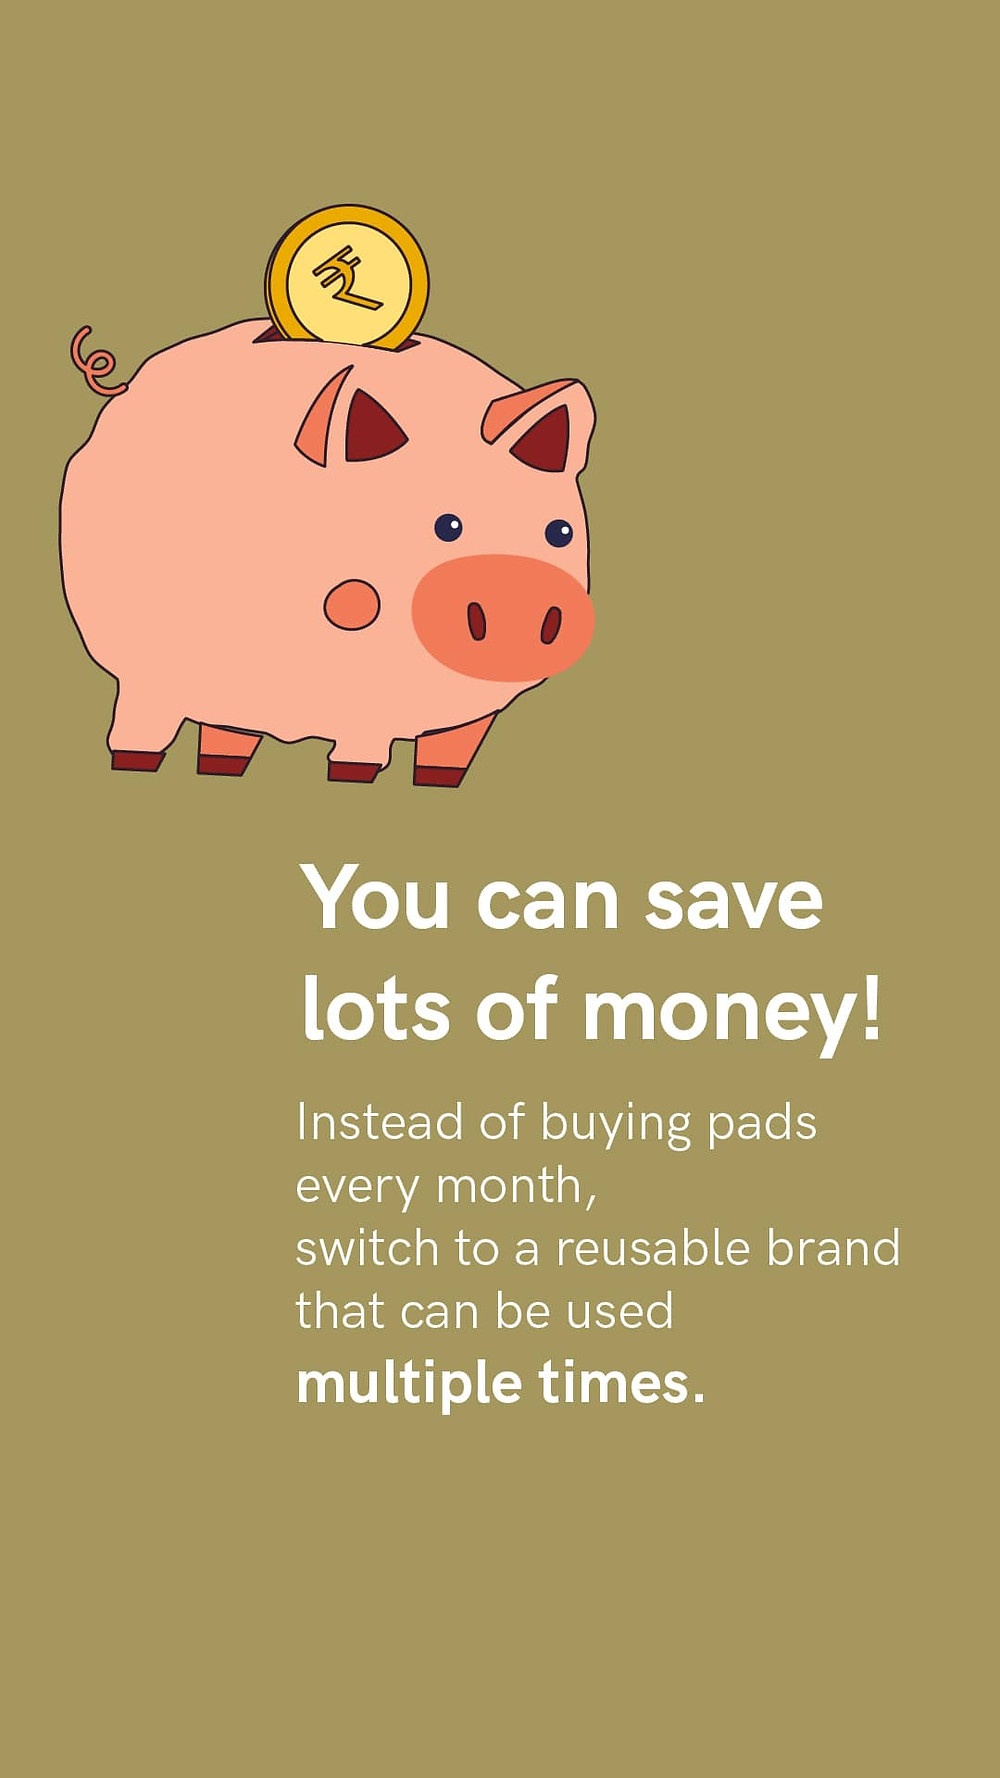 Save money by choosing reusable pads